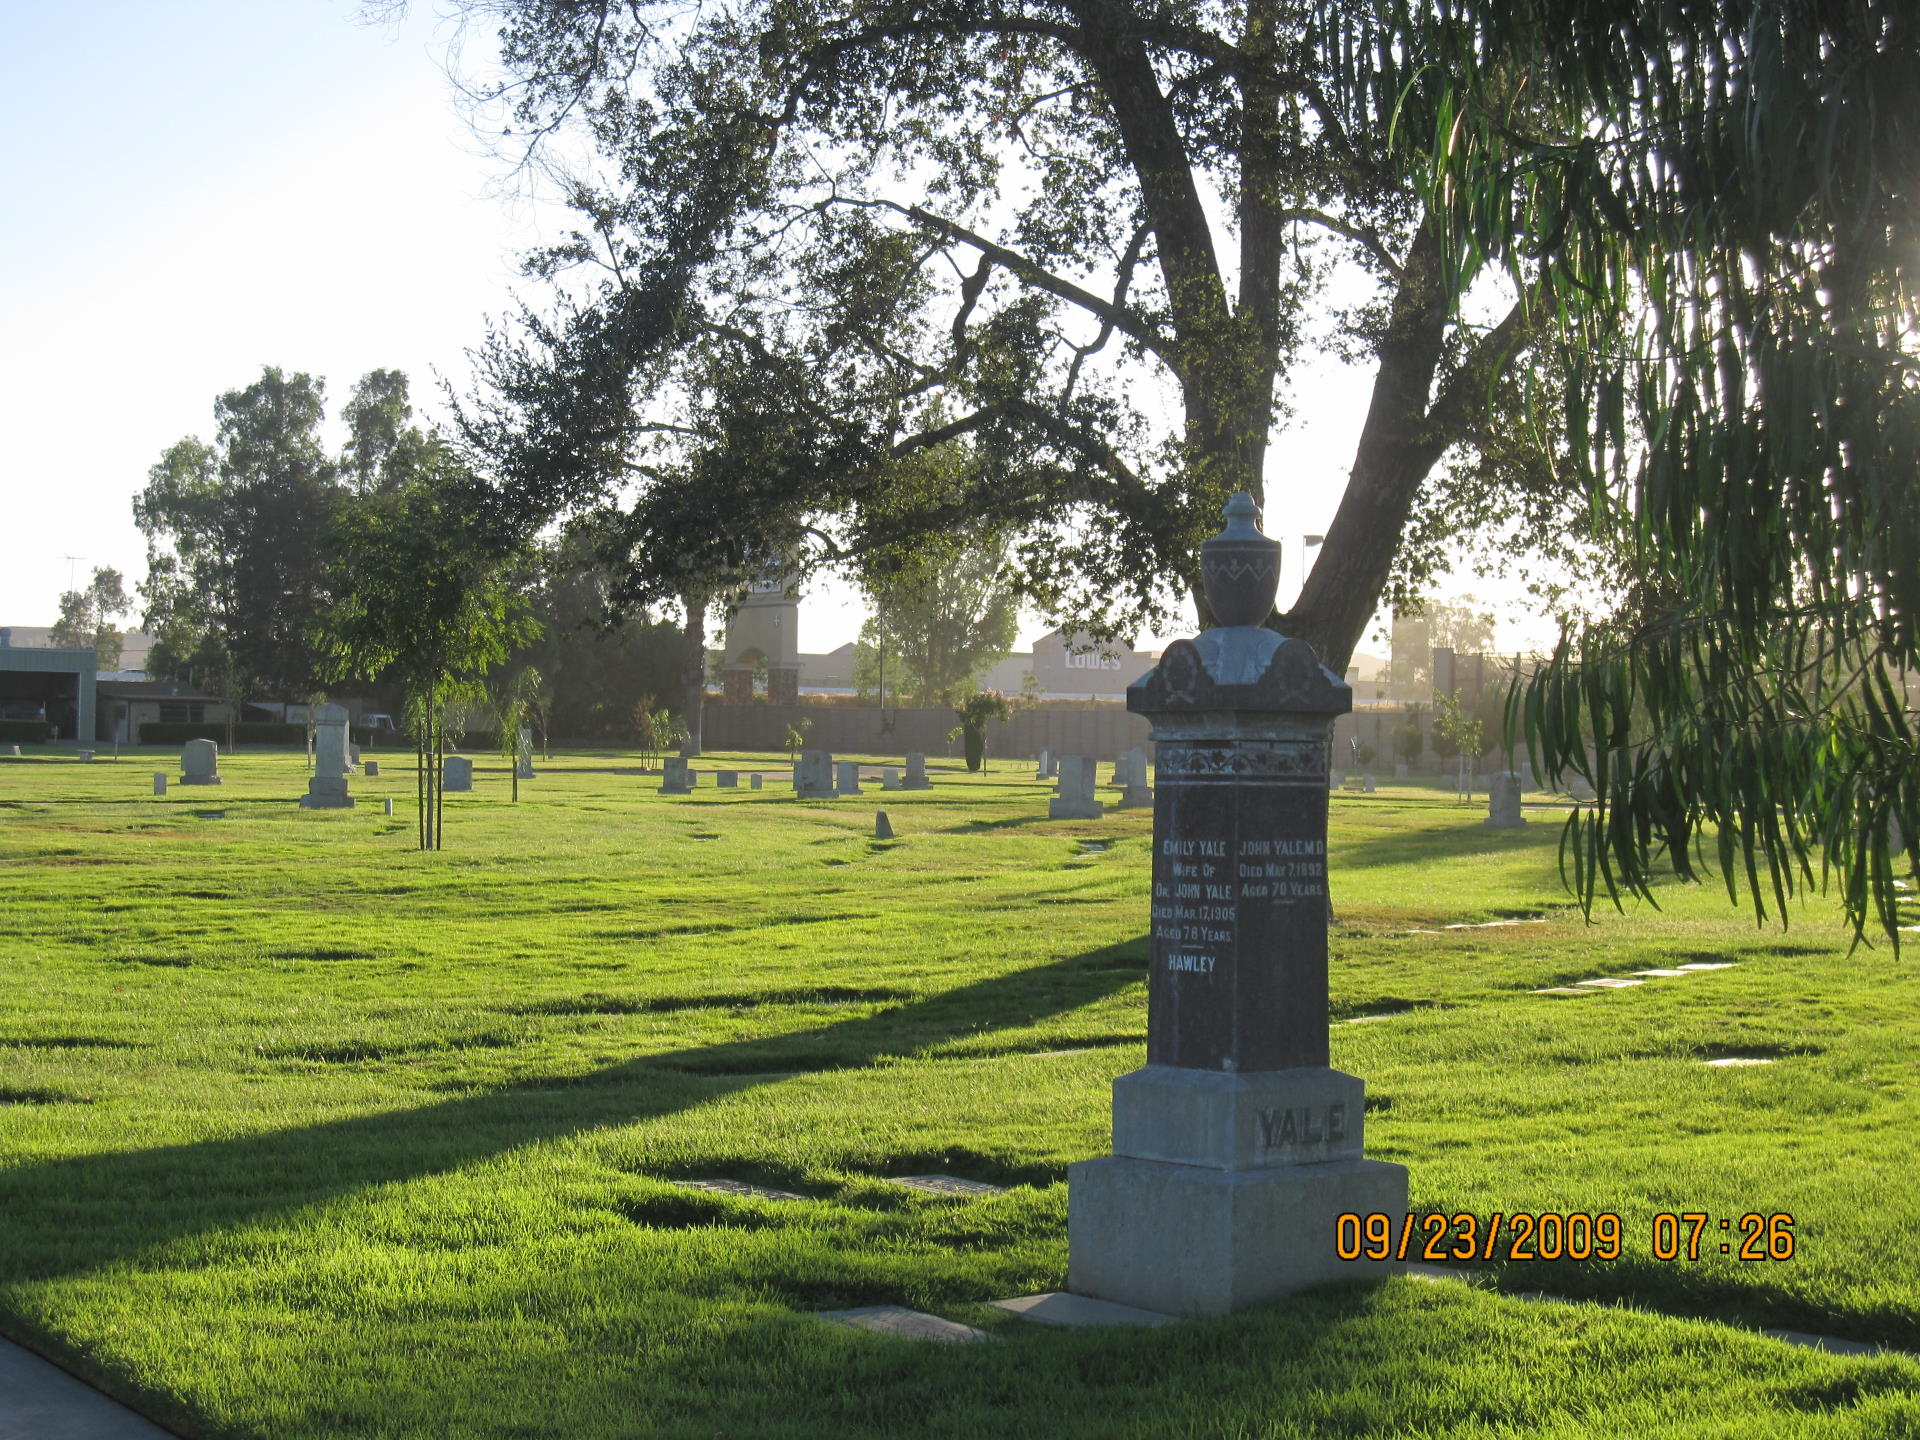 burial grounds with a tall headstone in the foreground